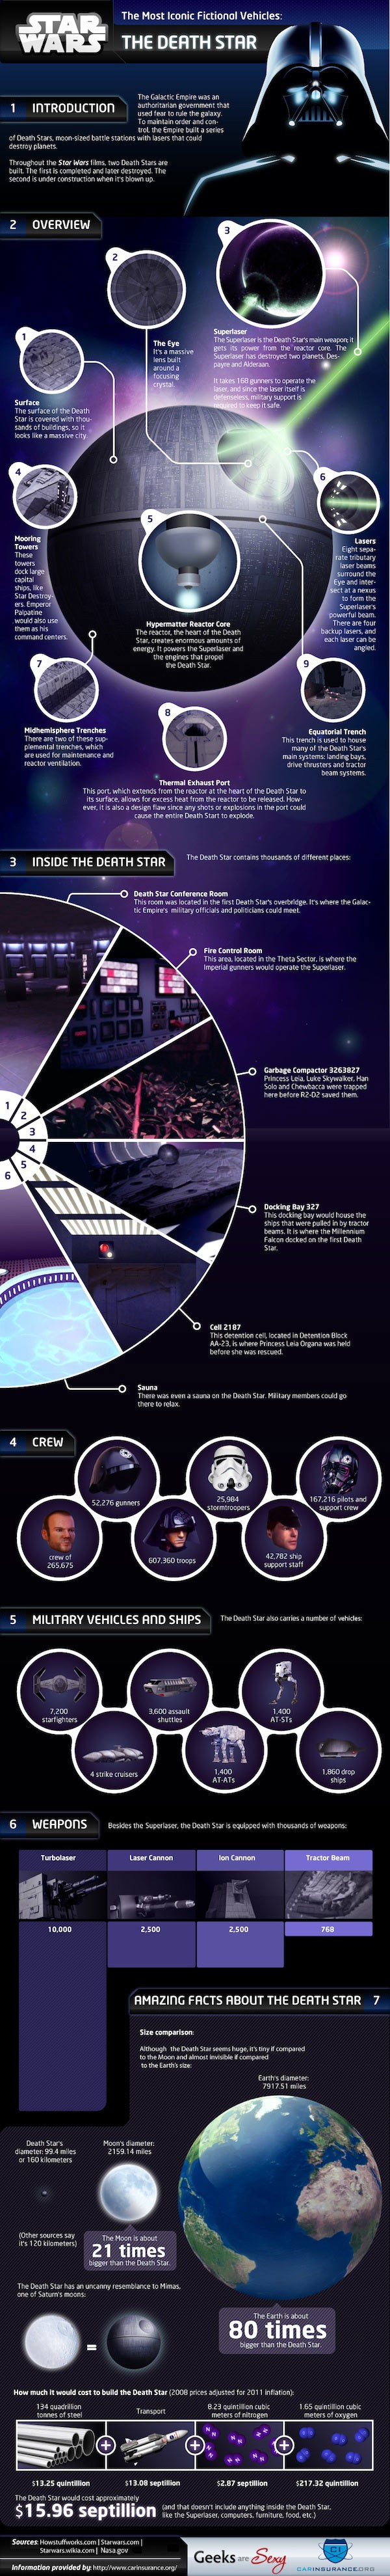 Death Star Infographic